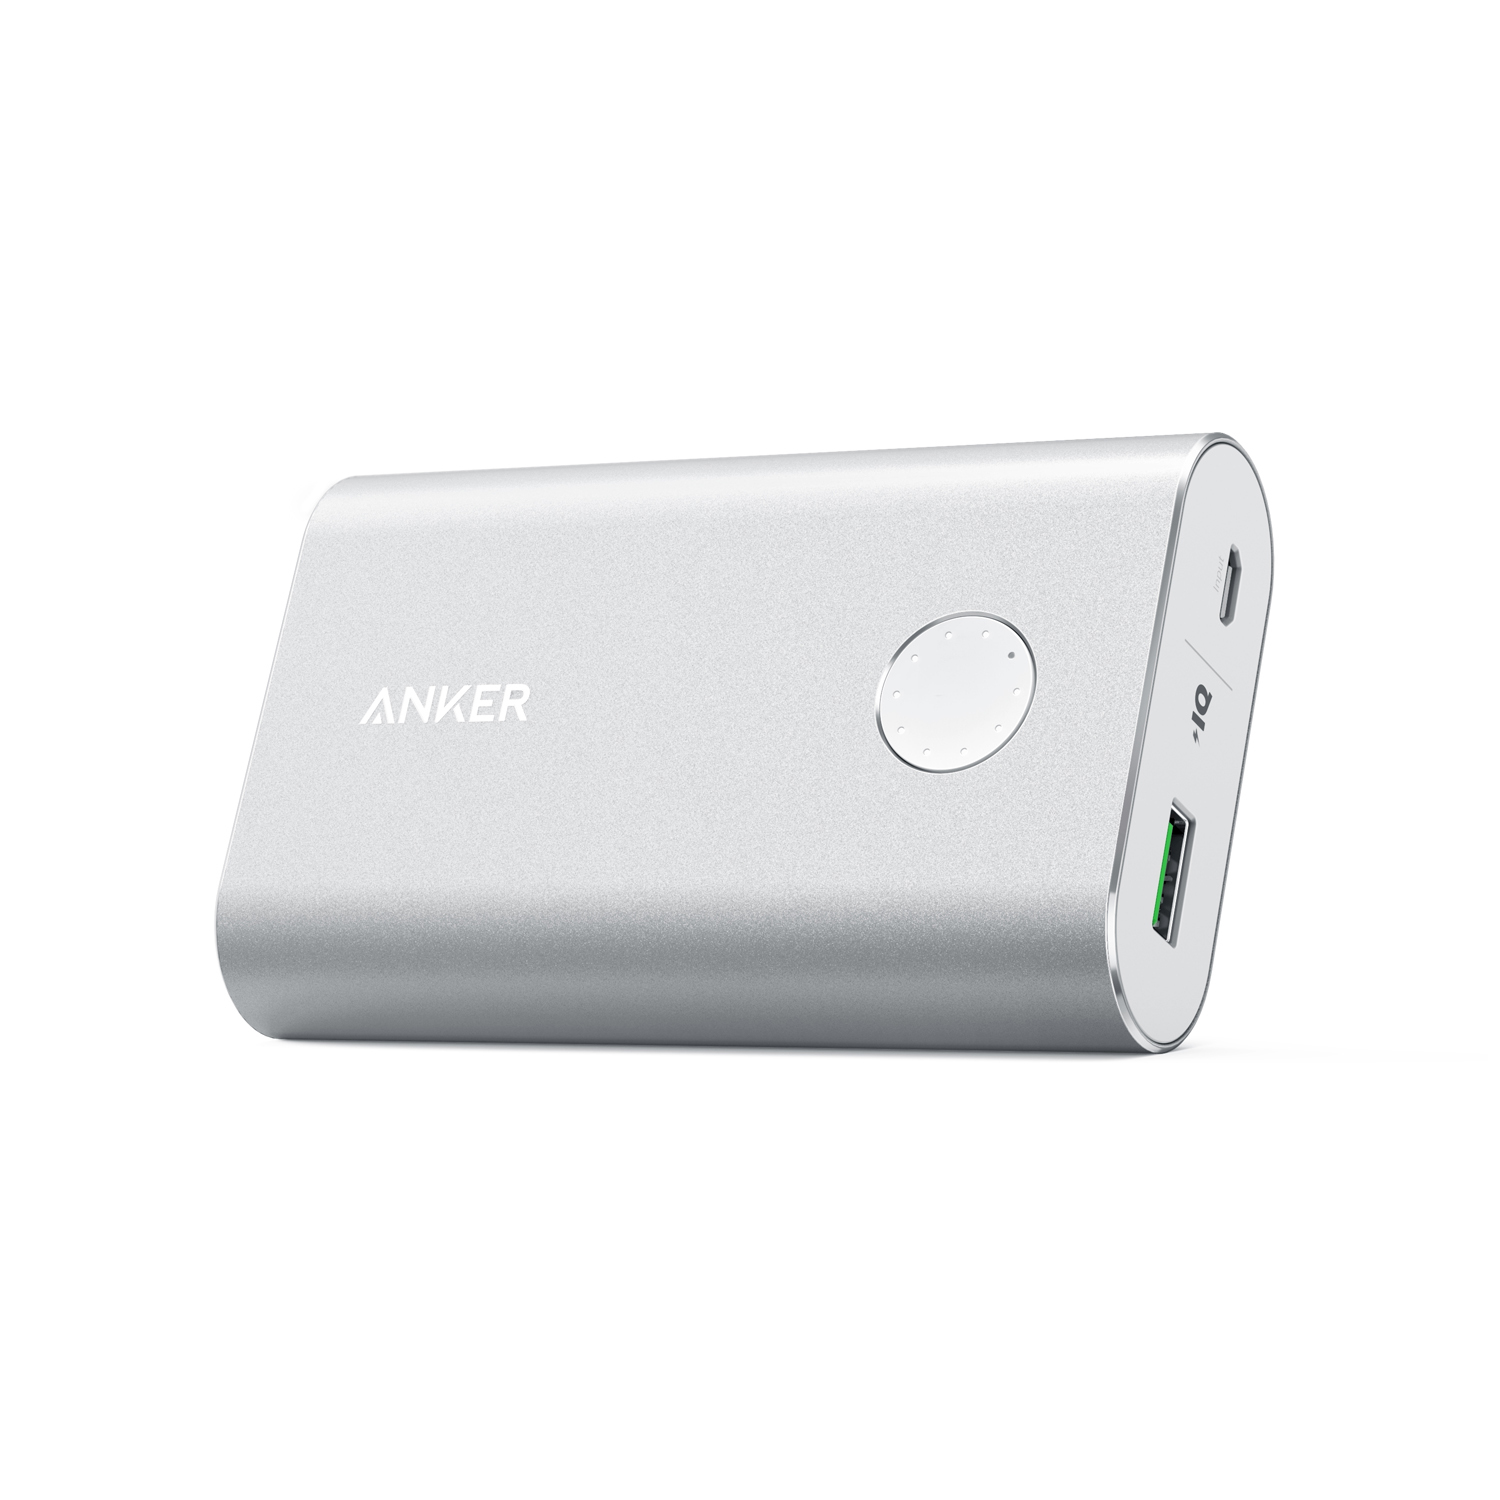 Anker PowerCore+ 10050 power bank Silver 10050 mAh